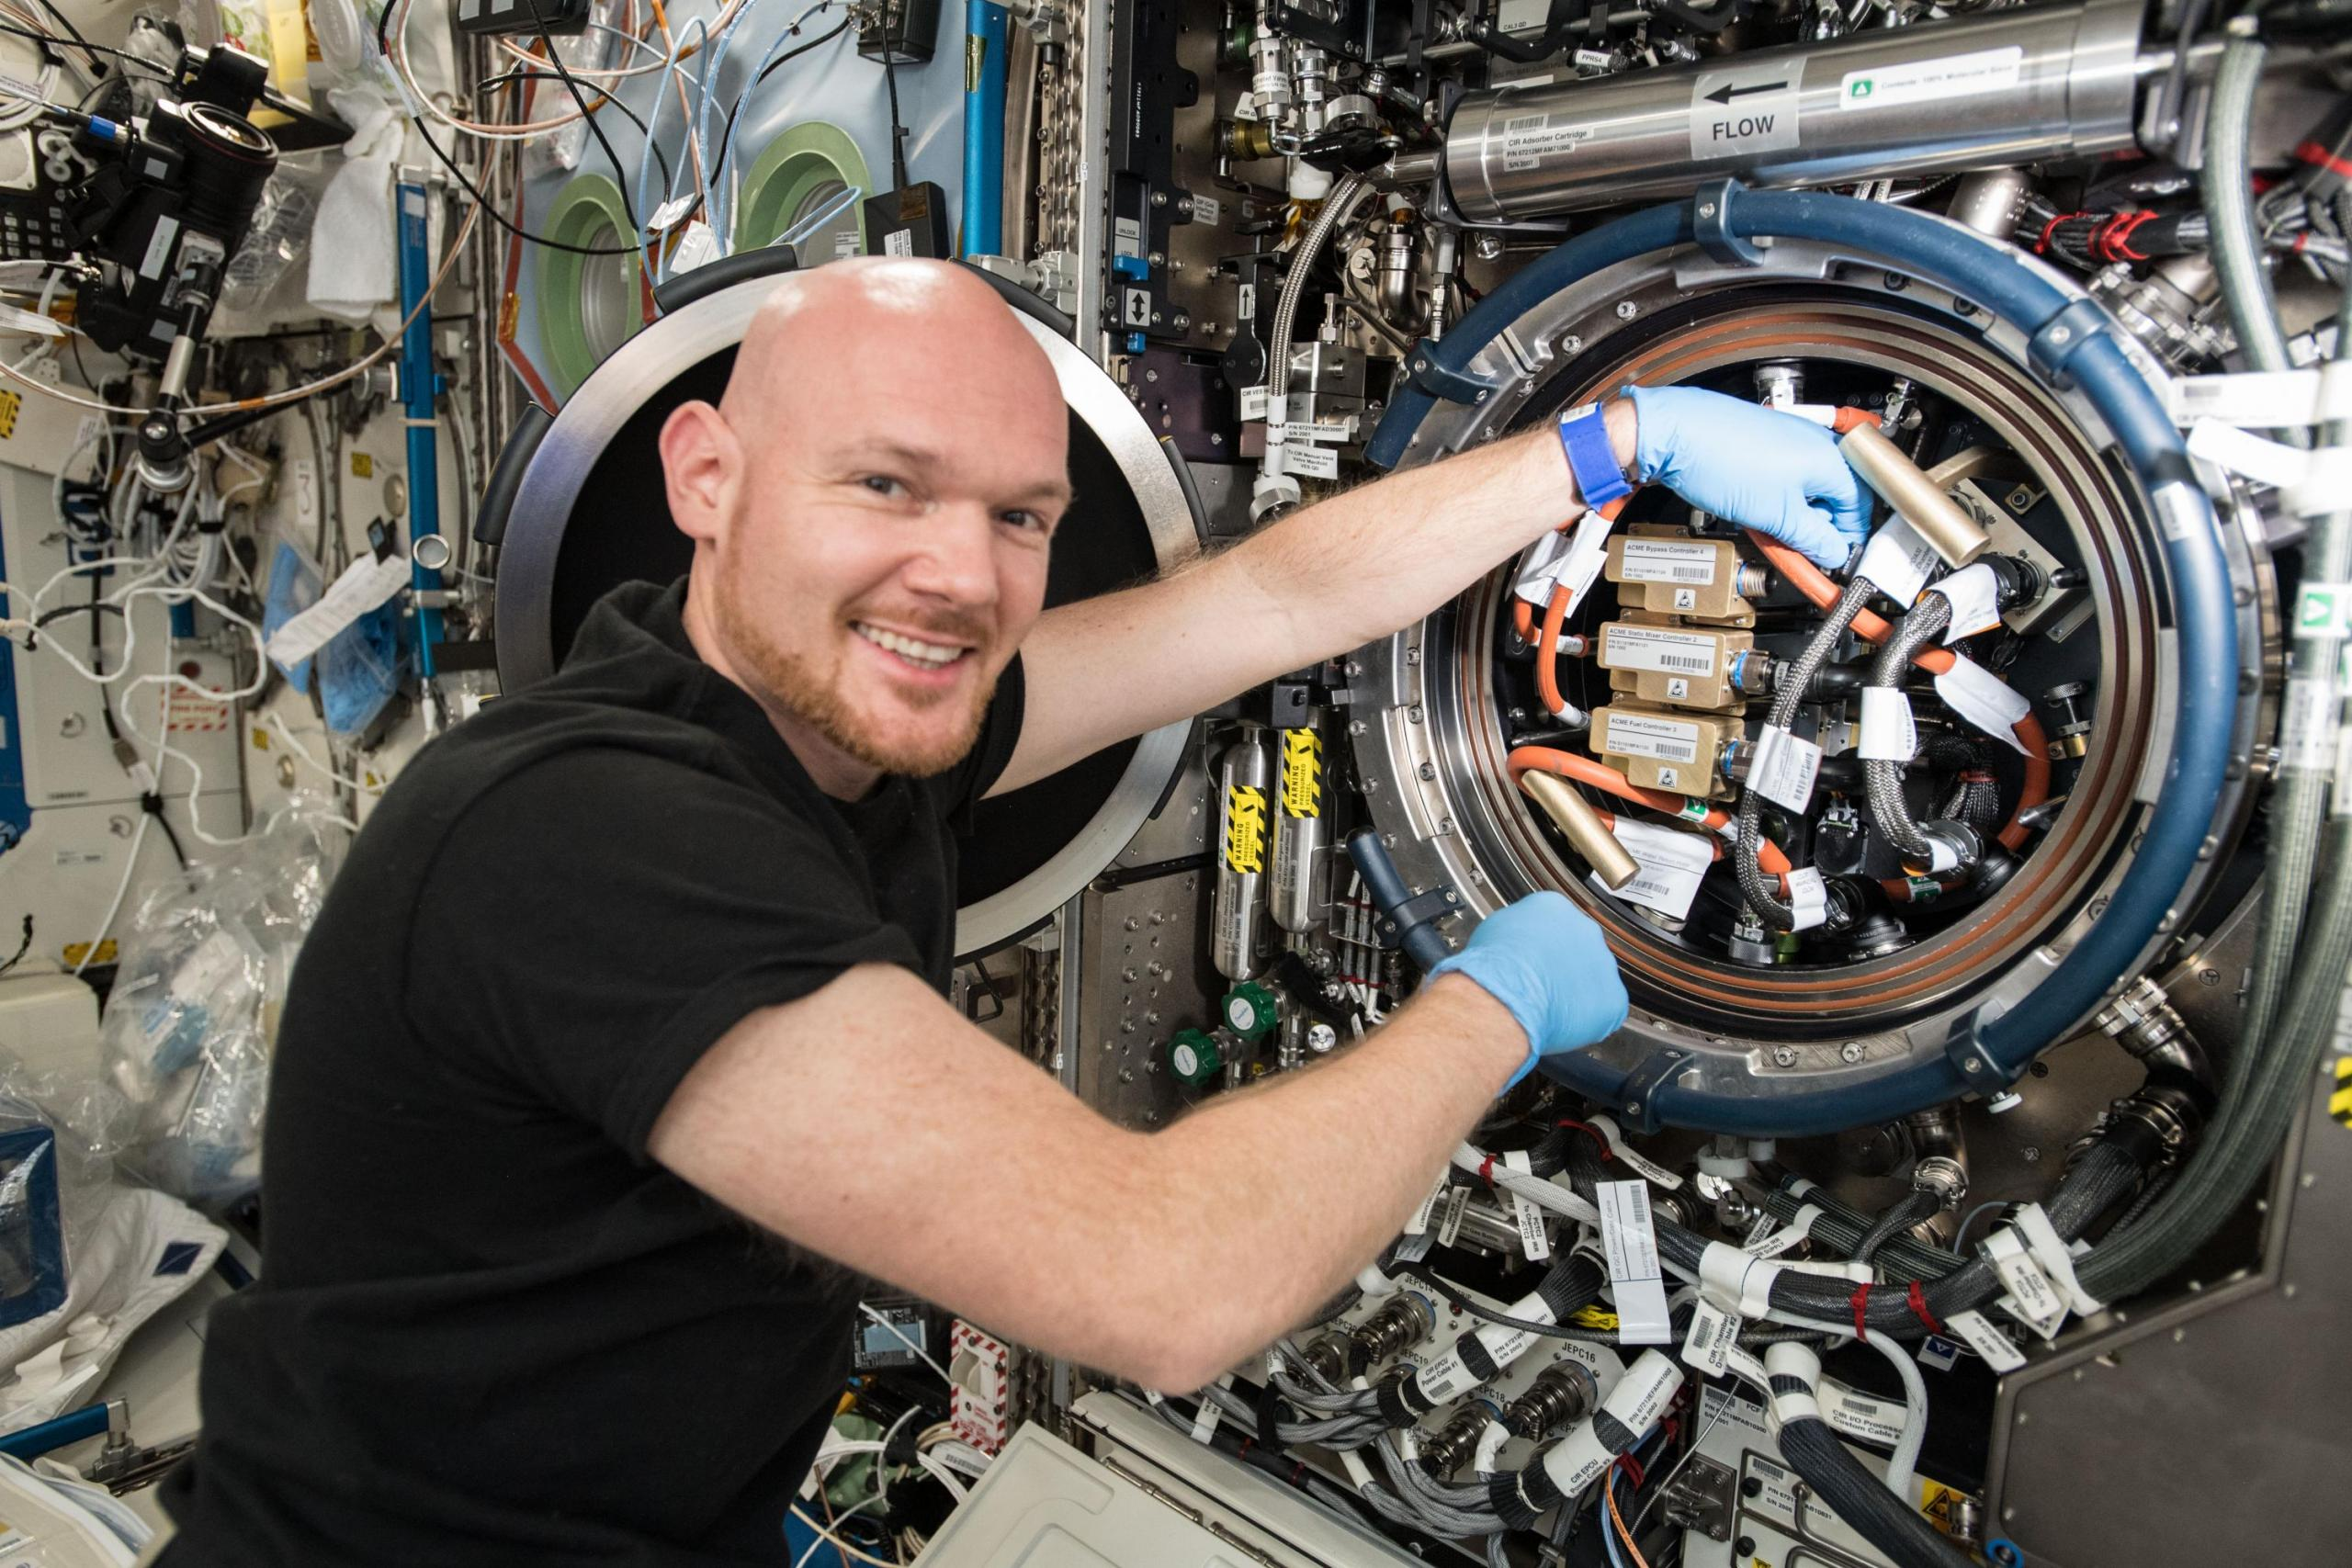 Photo of Astronaut Alexander Gerst replacing a gear on the ISS